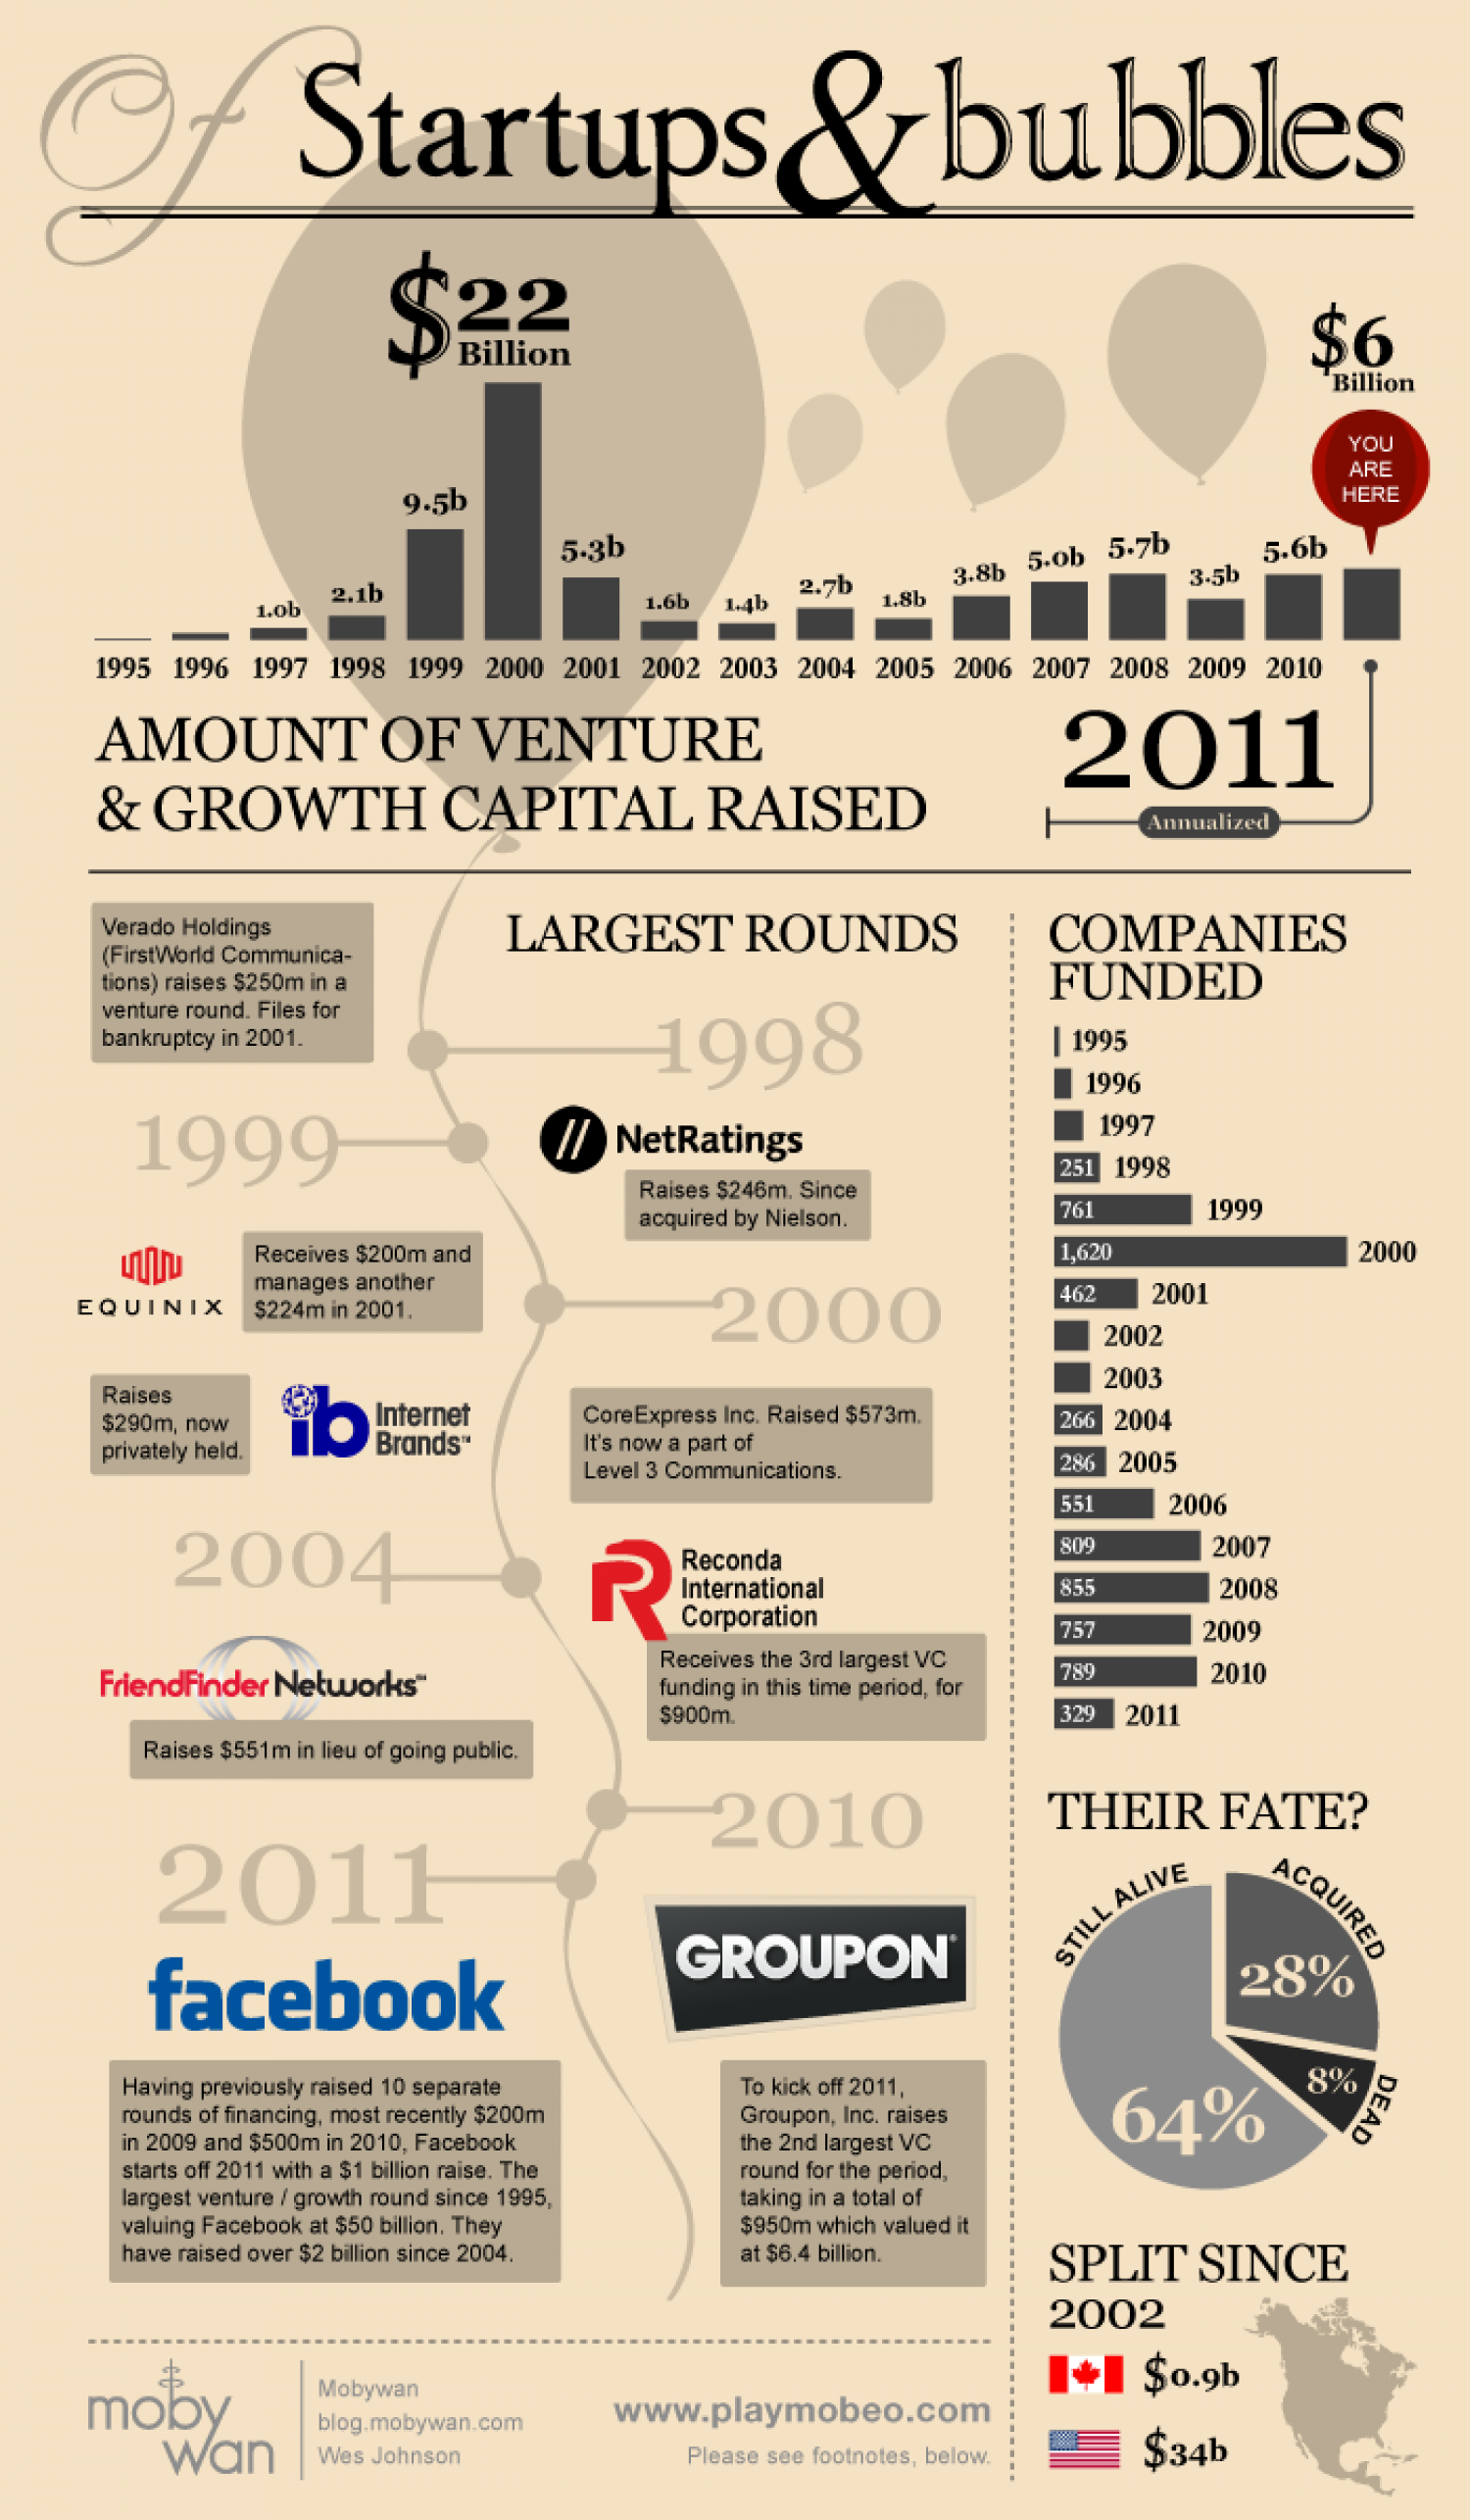 Startups and Bubbles Infographic